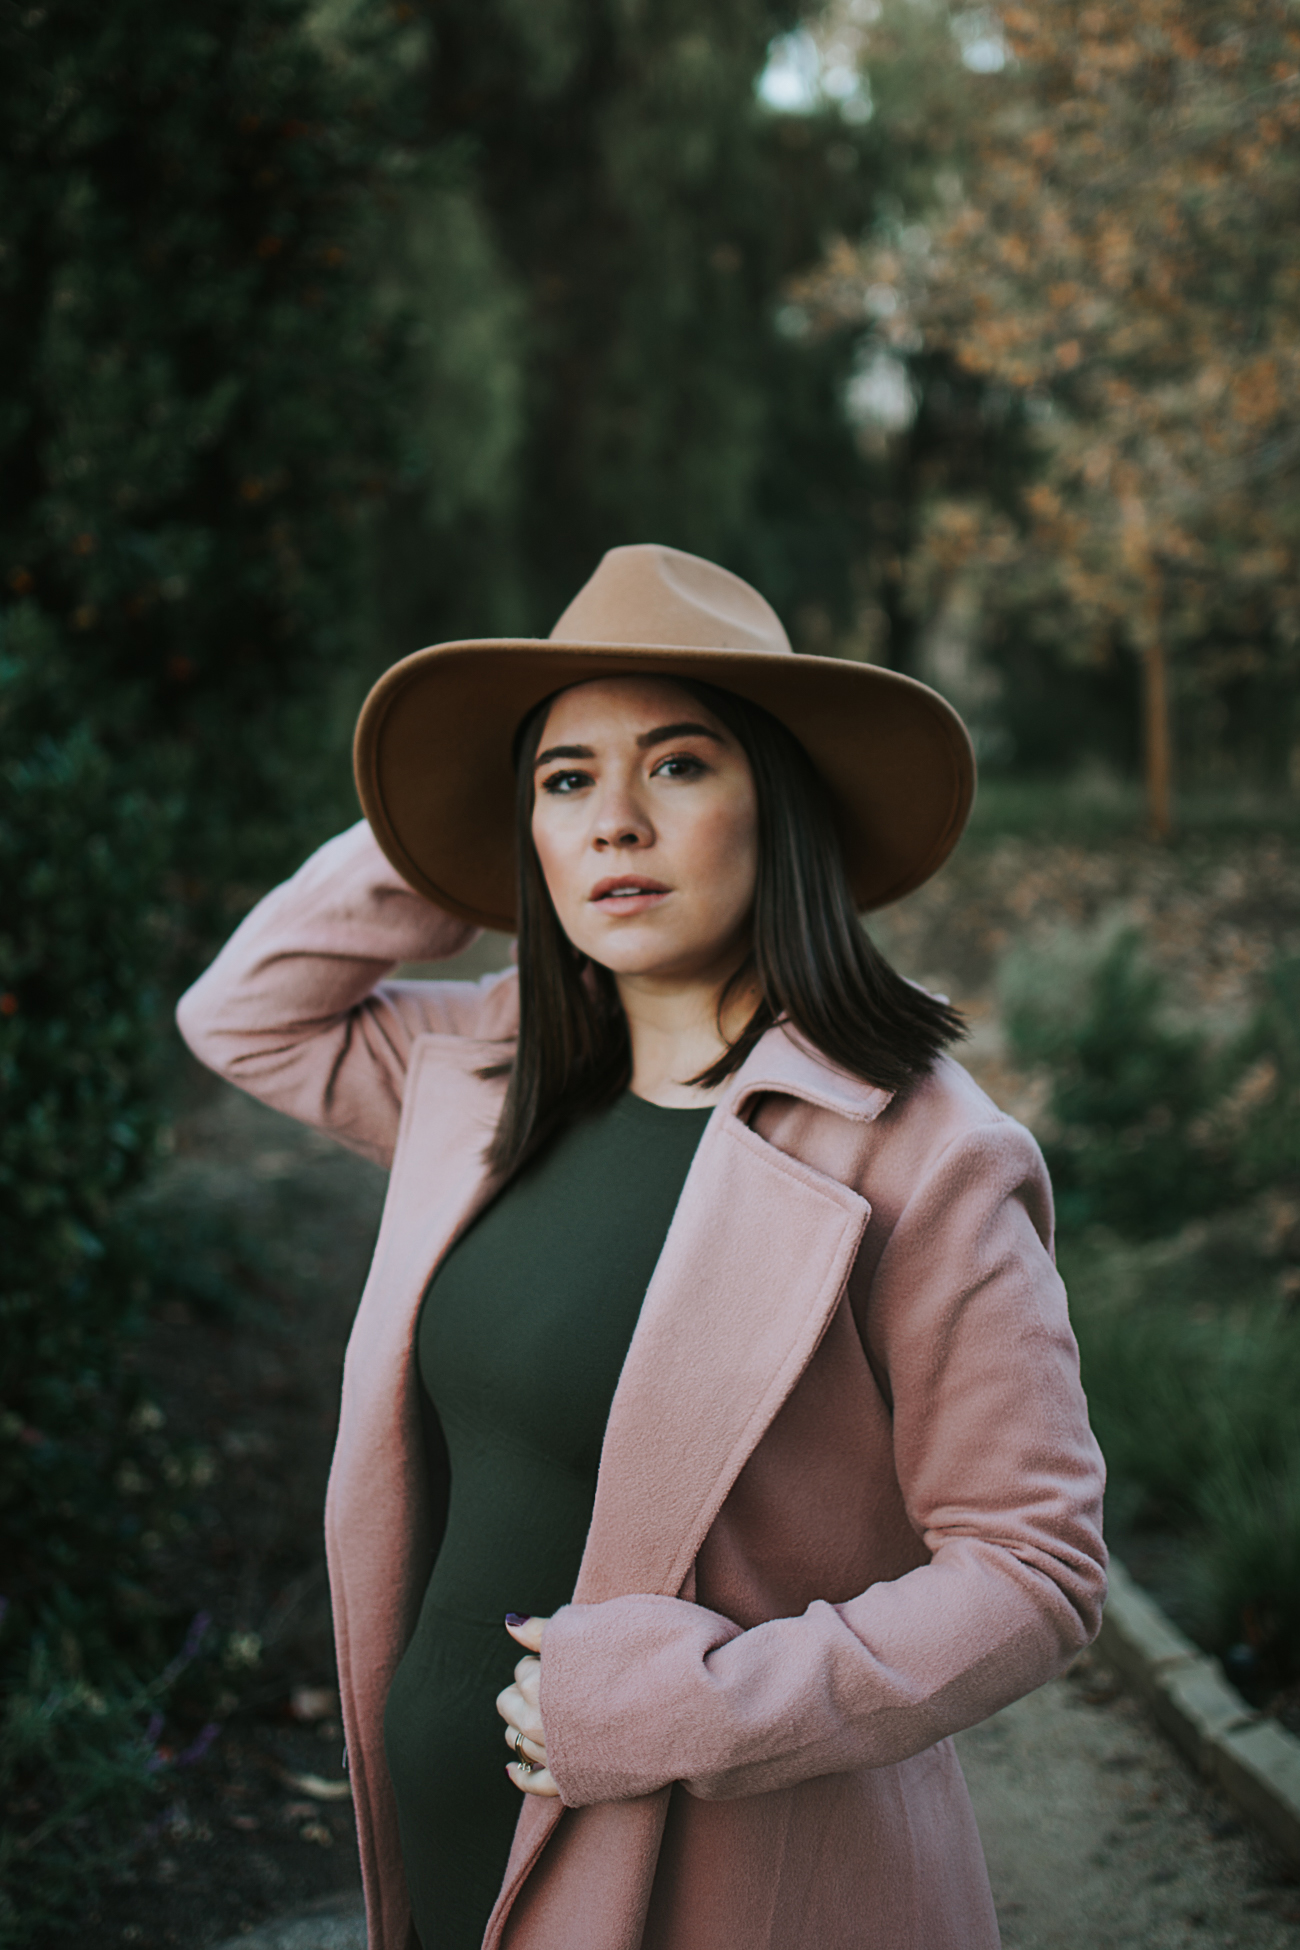 How to Wear Non-Maternity Clothes While Pregnant via. The Pacific Standard | www.thepacificstandard.com